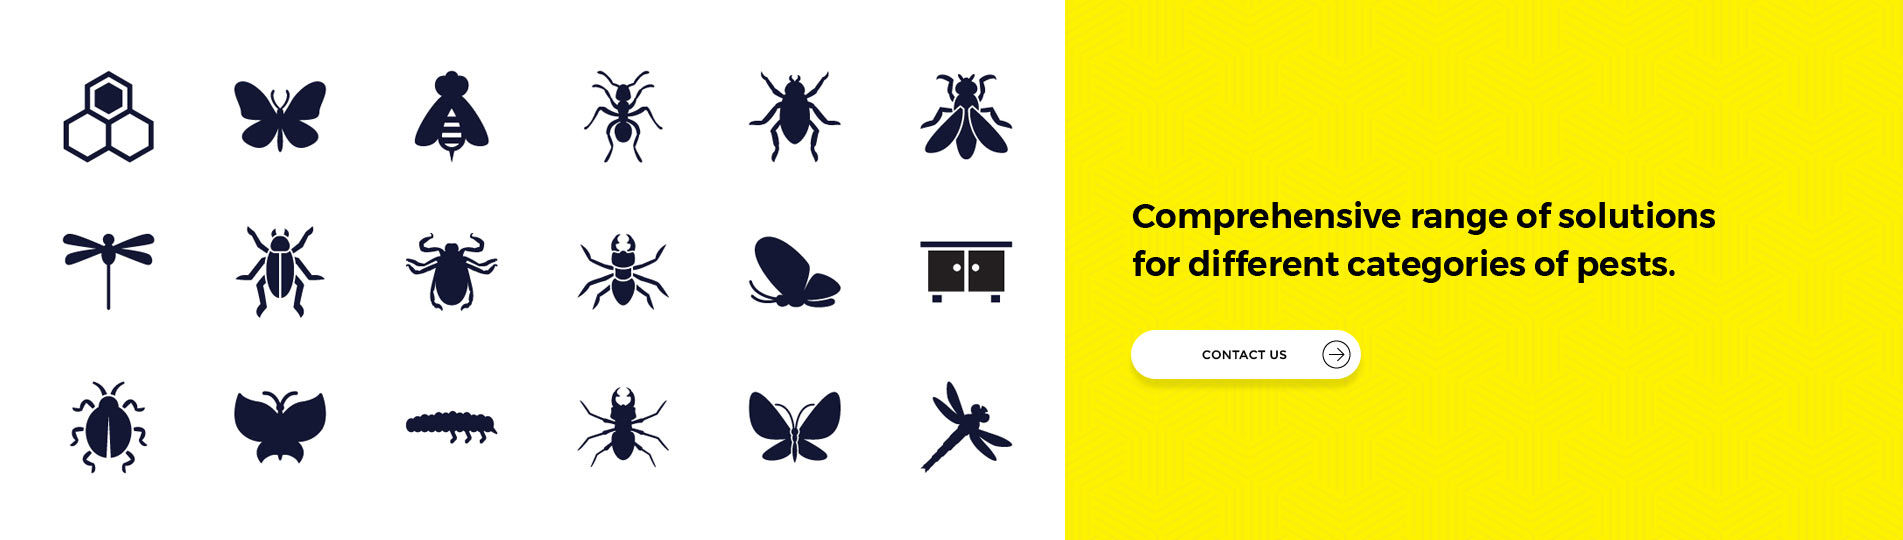 Best Reliable Food Factory pest control Company in India